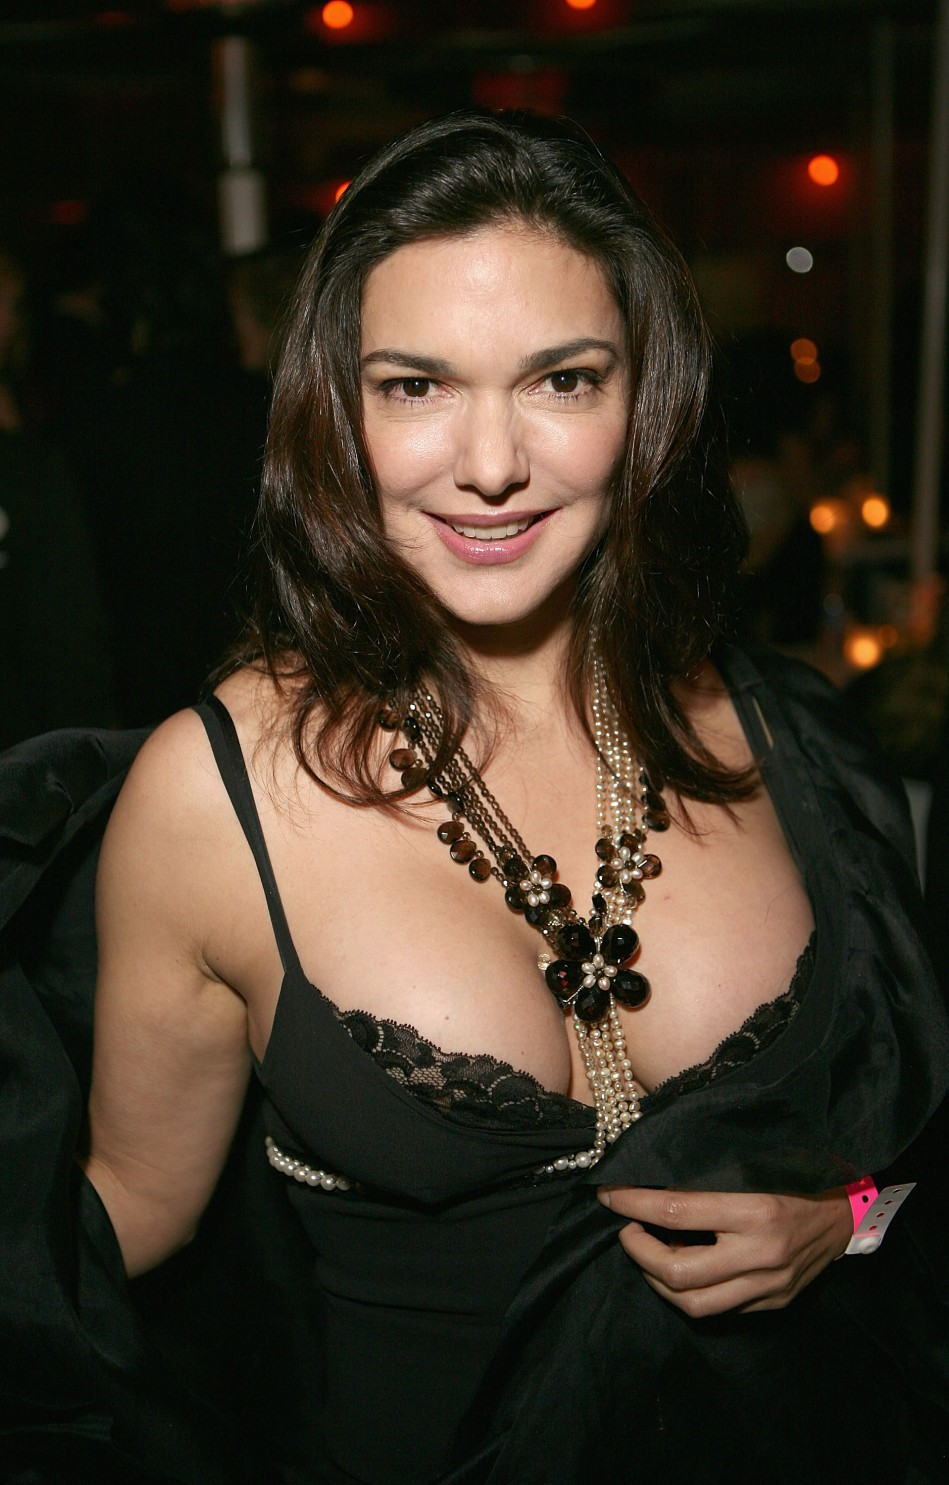 Laura Harring @ Radar Magazine's 1st annual Hollywood launch party